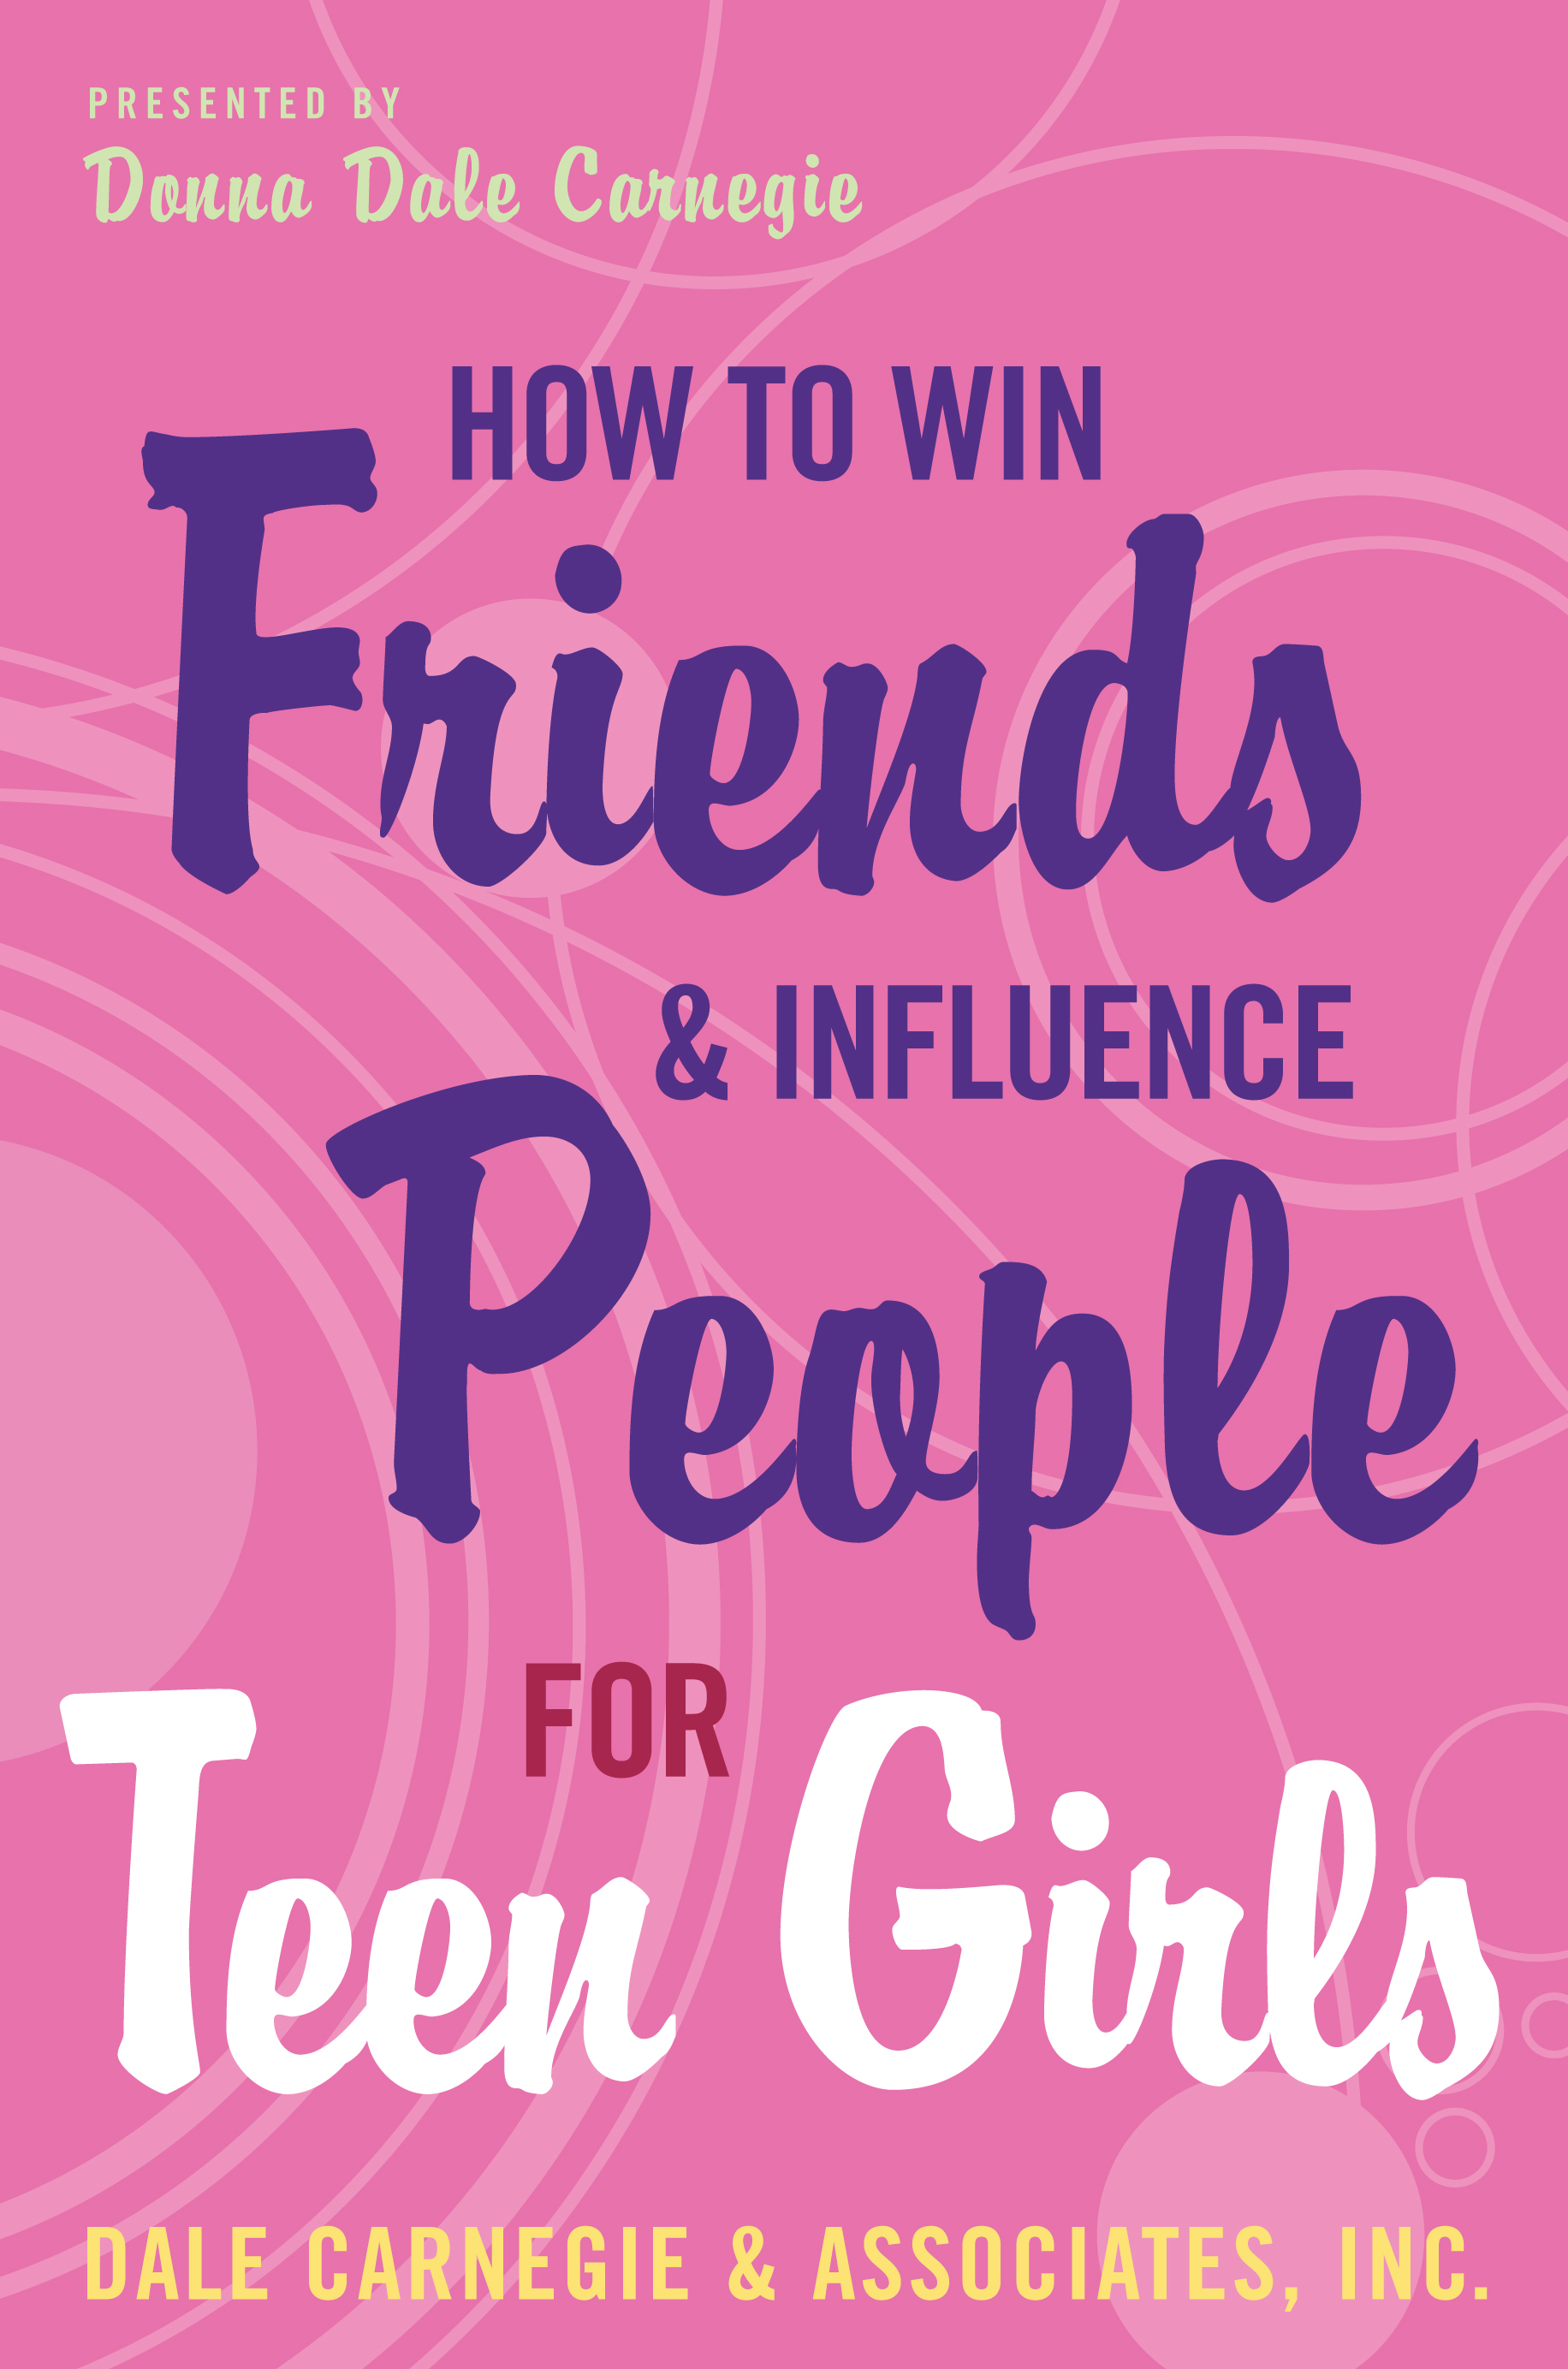 """2. """"How to win Friends and Influence People (For Teen Girls)"""" -"""